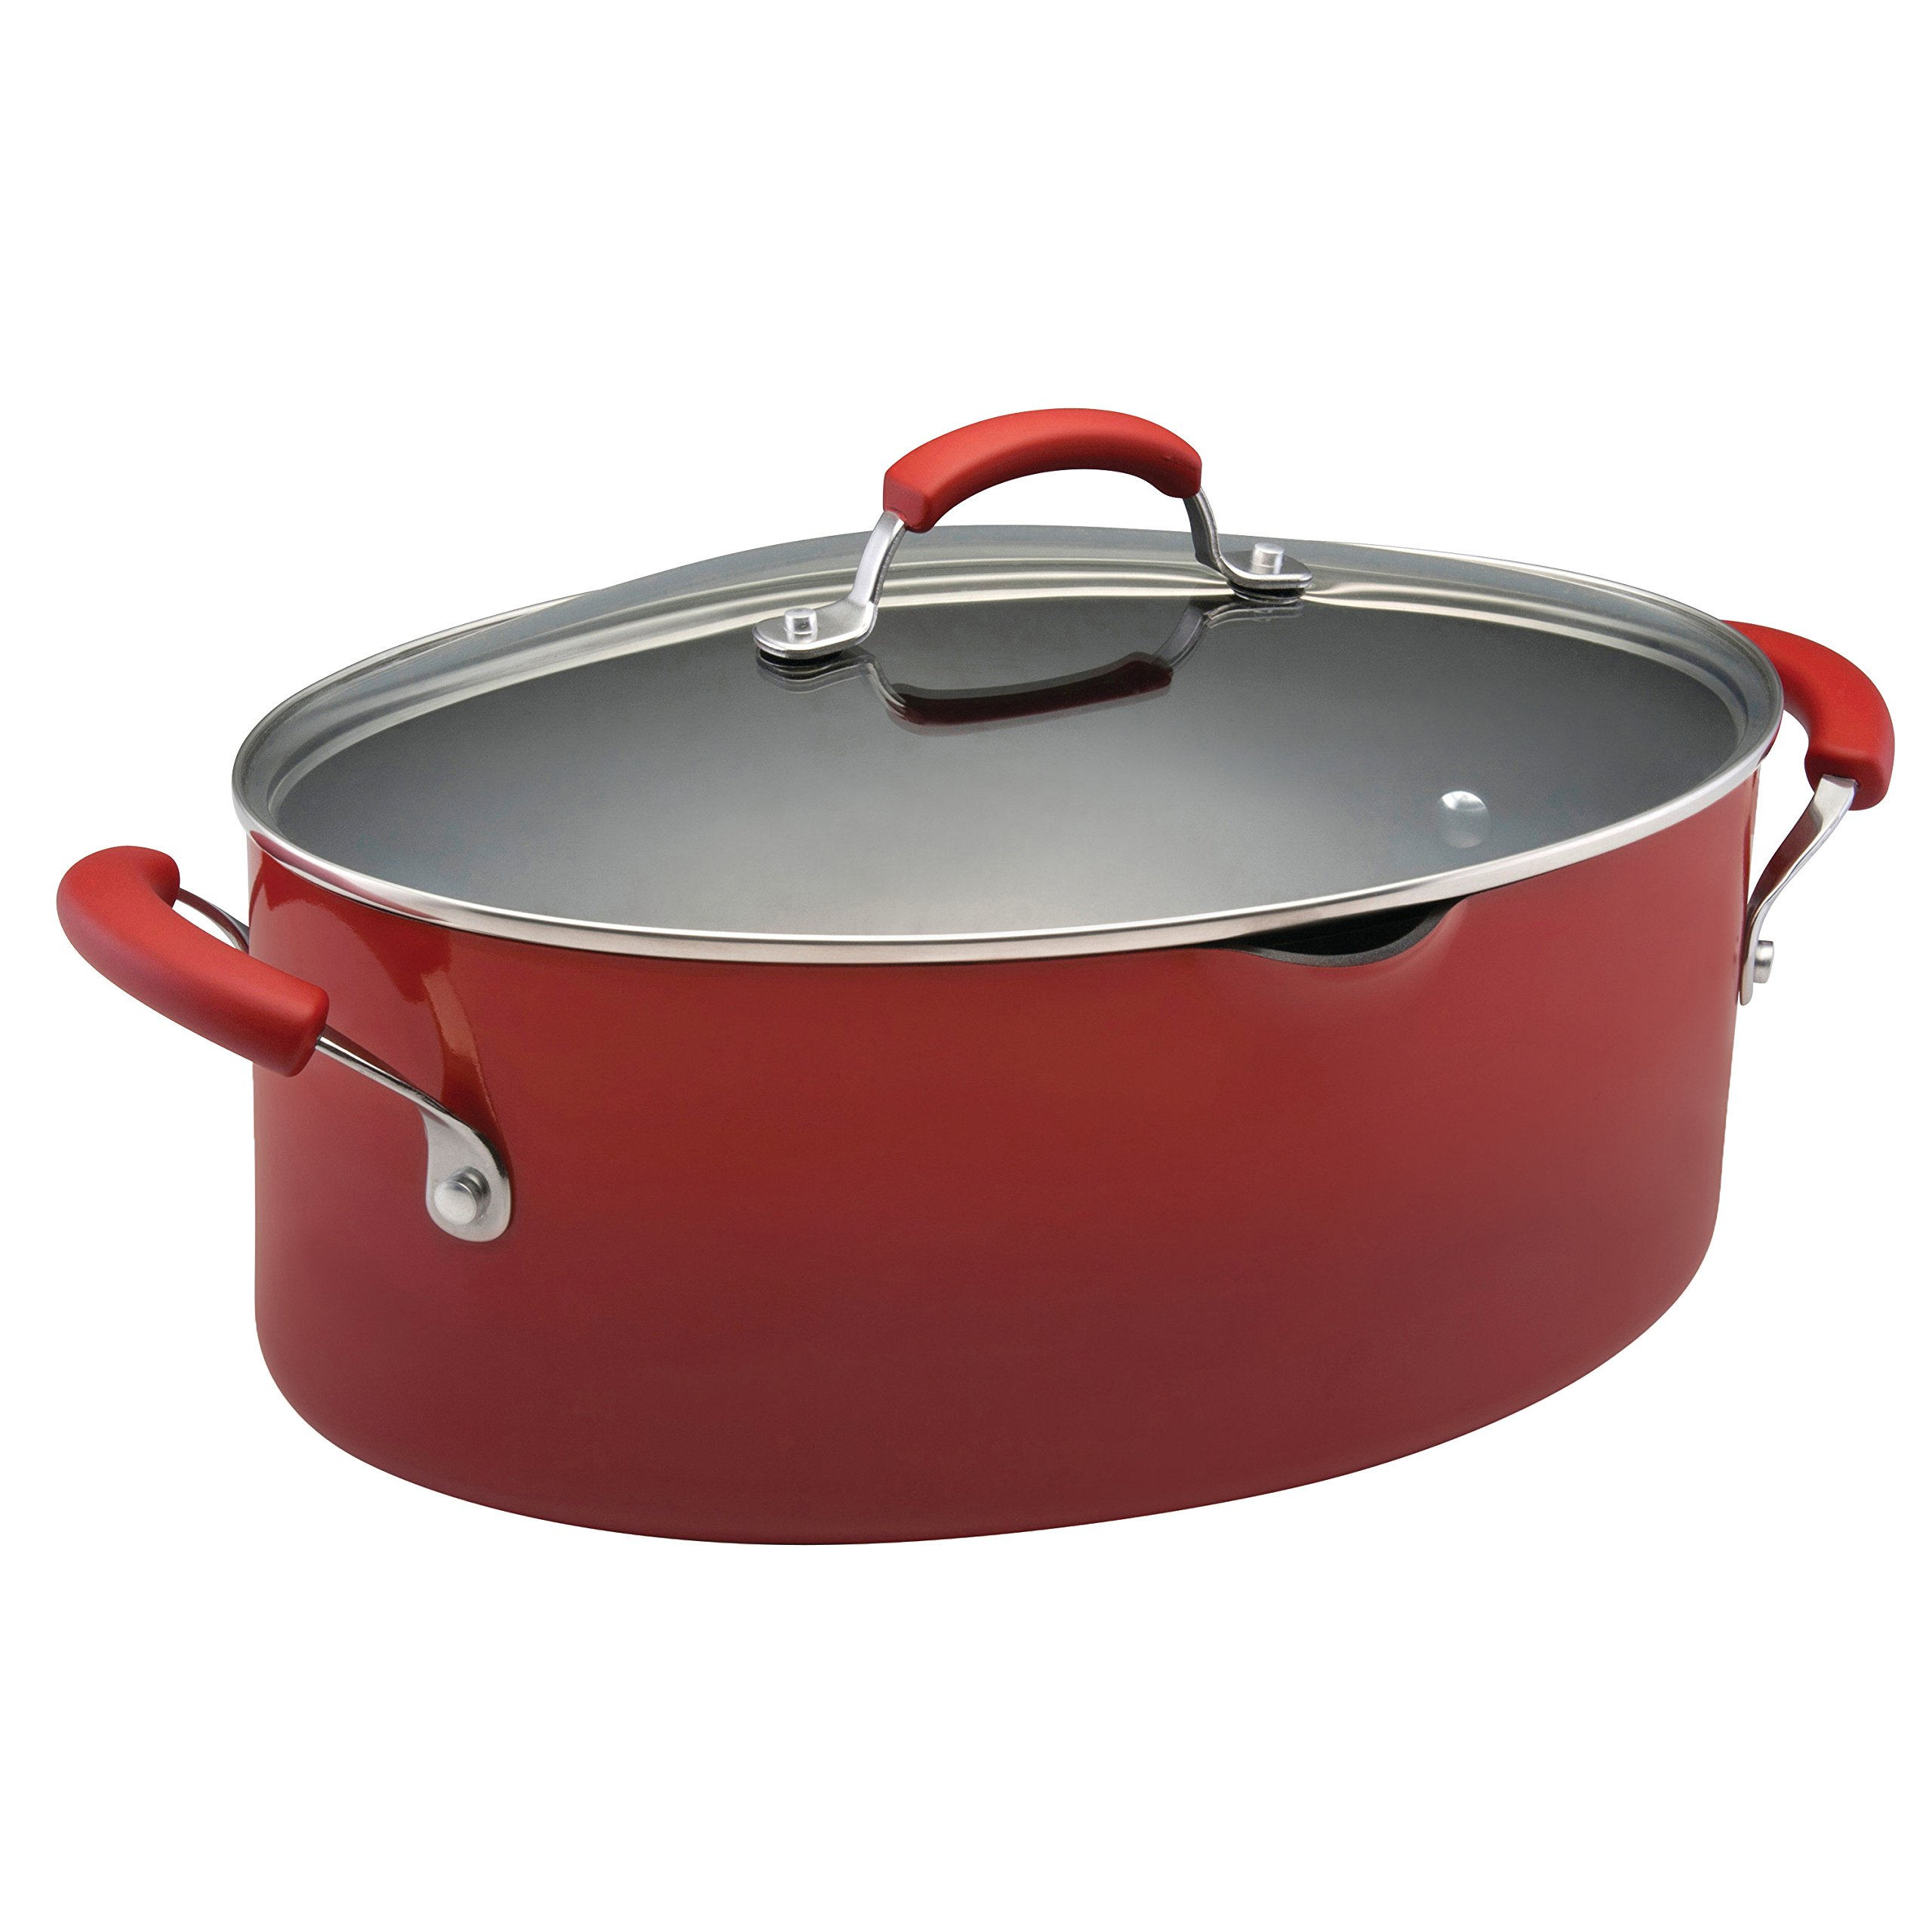 Rachael Ray Porcelain Enamel II Nonstick 8-Quart Covered Oval Pasta Pot with Pour Spout, Red Gradient